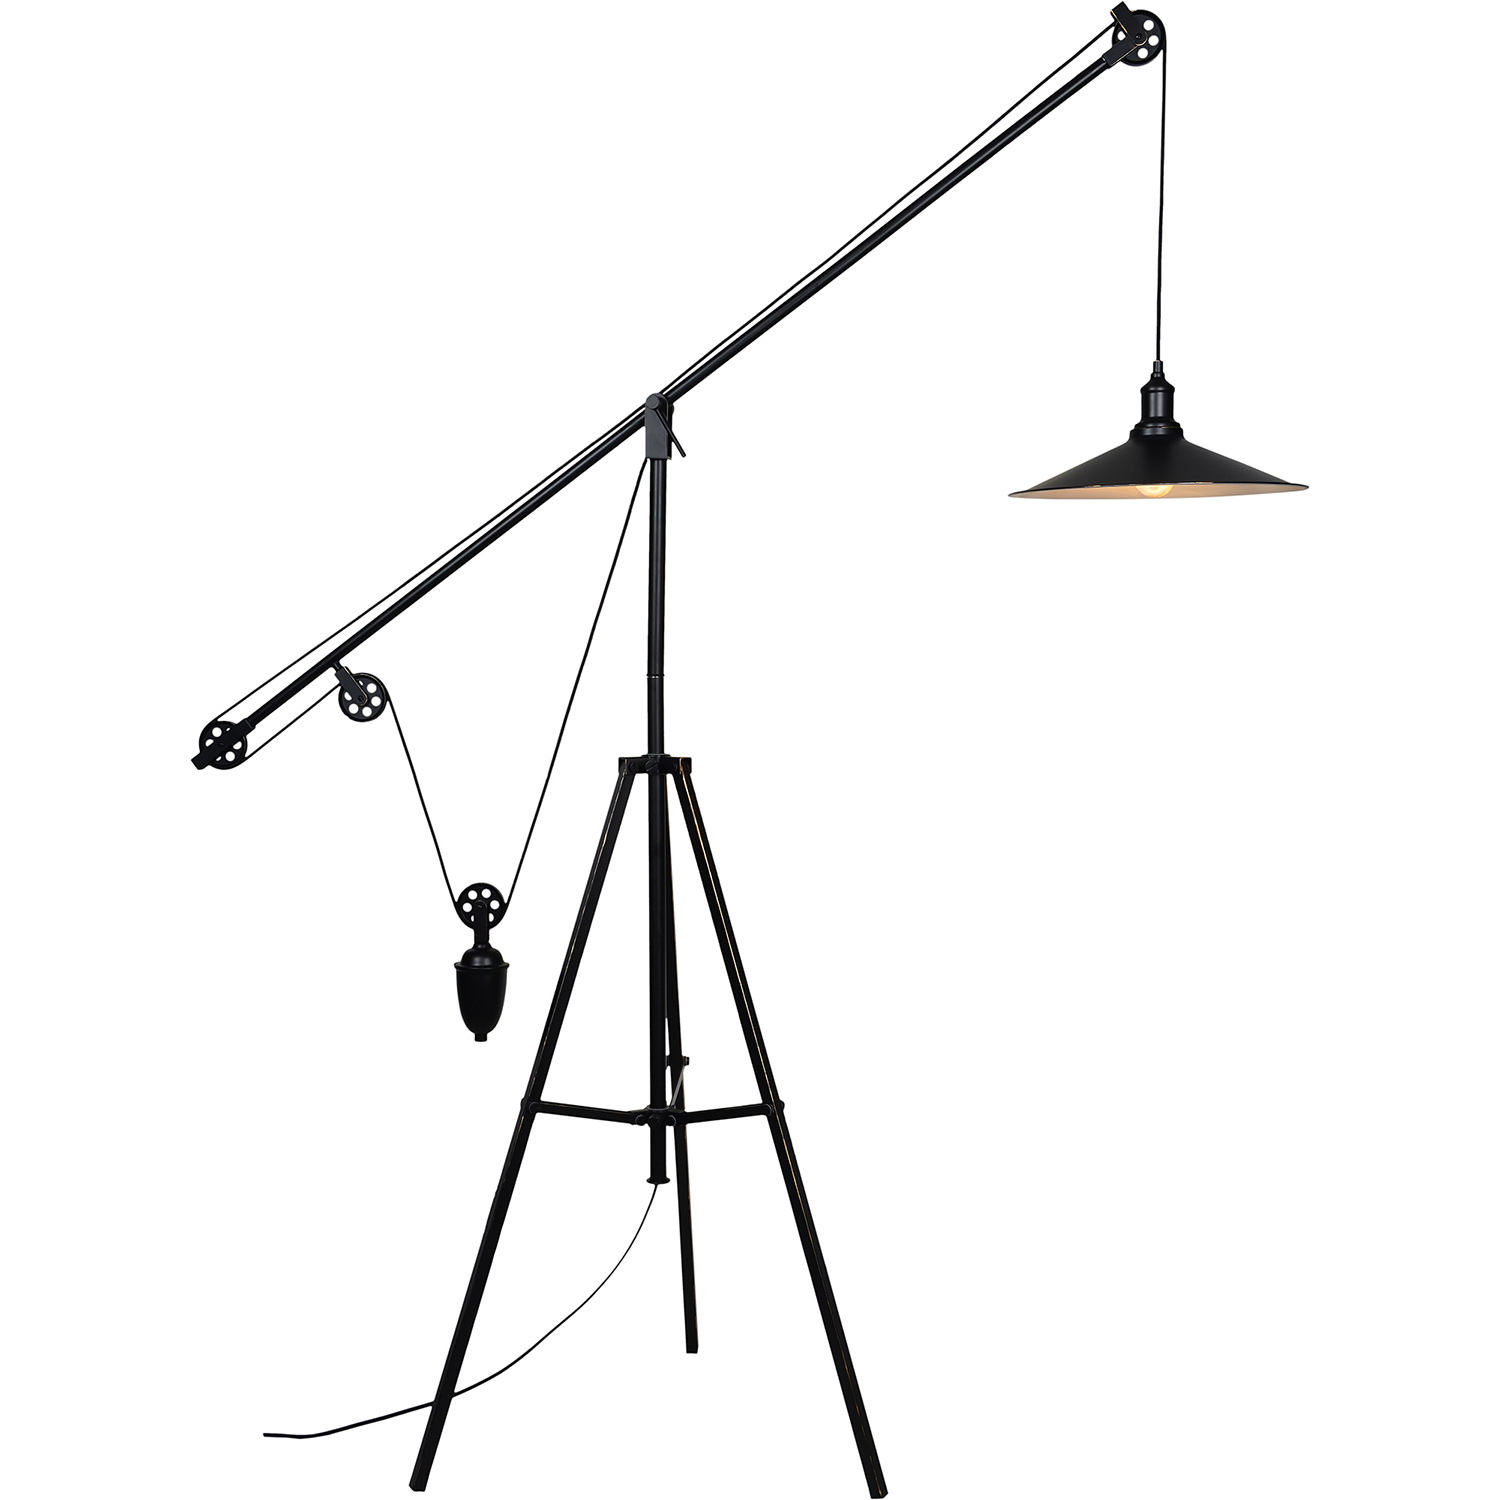 Ren-Wil Qade Floor Lamp - Oil Rubbed Bronze